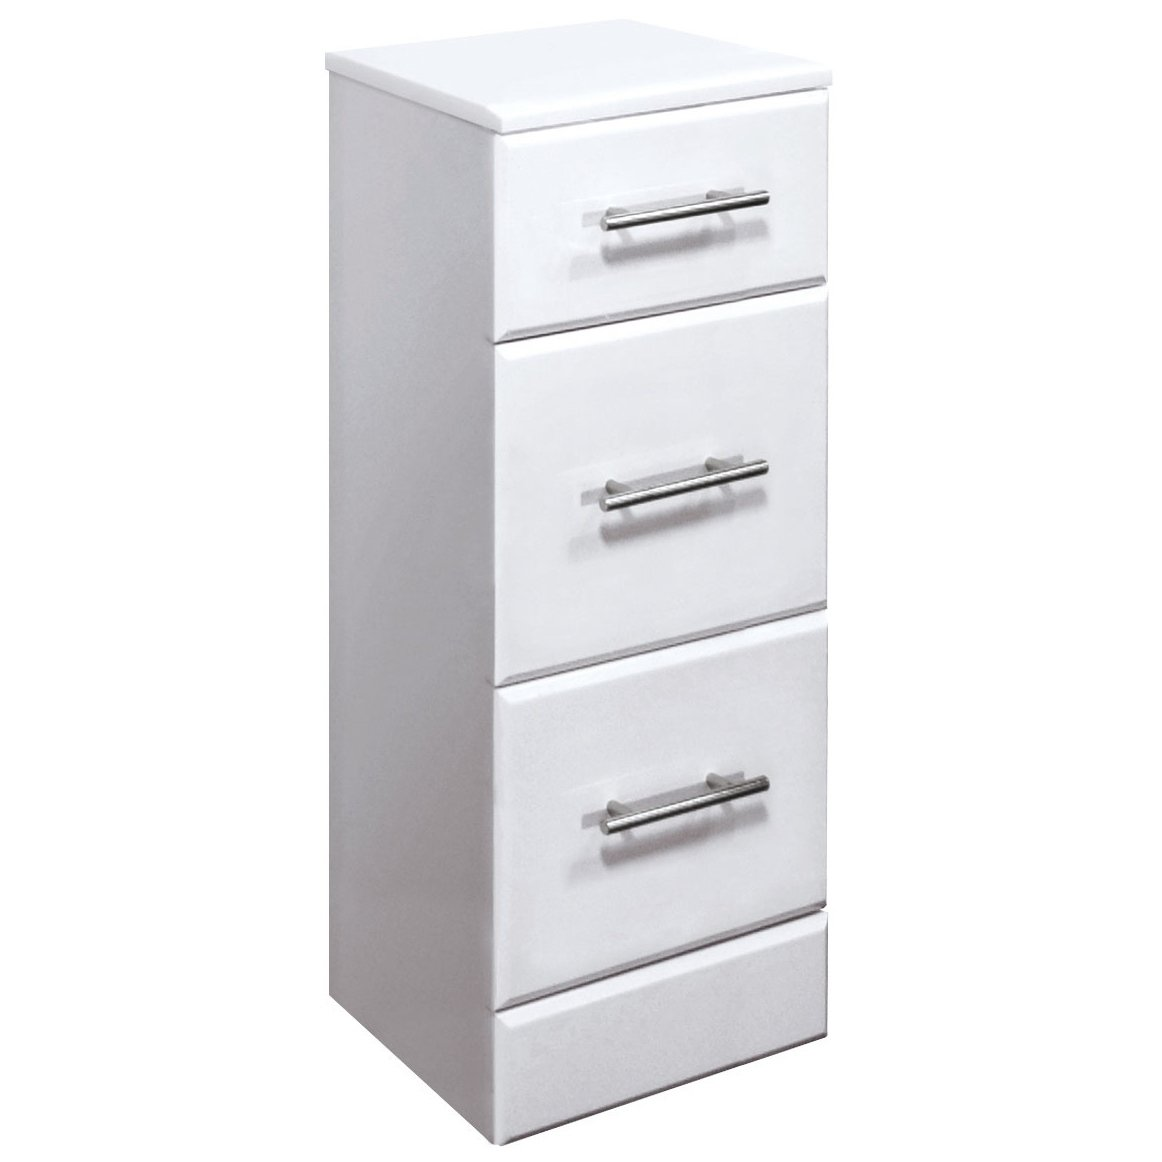 gloss gloss modular bathroom furniture collection vanity. 1500mm High Gloss White Bathroom Furniture Set - Vanity Cabinet Basin Unit \u0026 3 Drawer Cupboard: Amazon.co.uk: Kitchen Home Modular Collection B